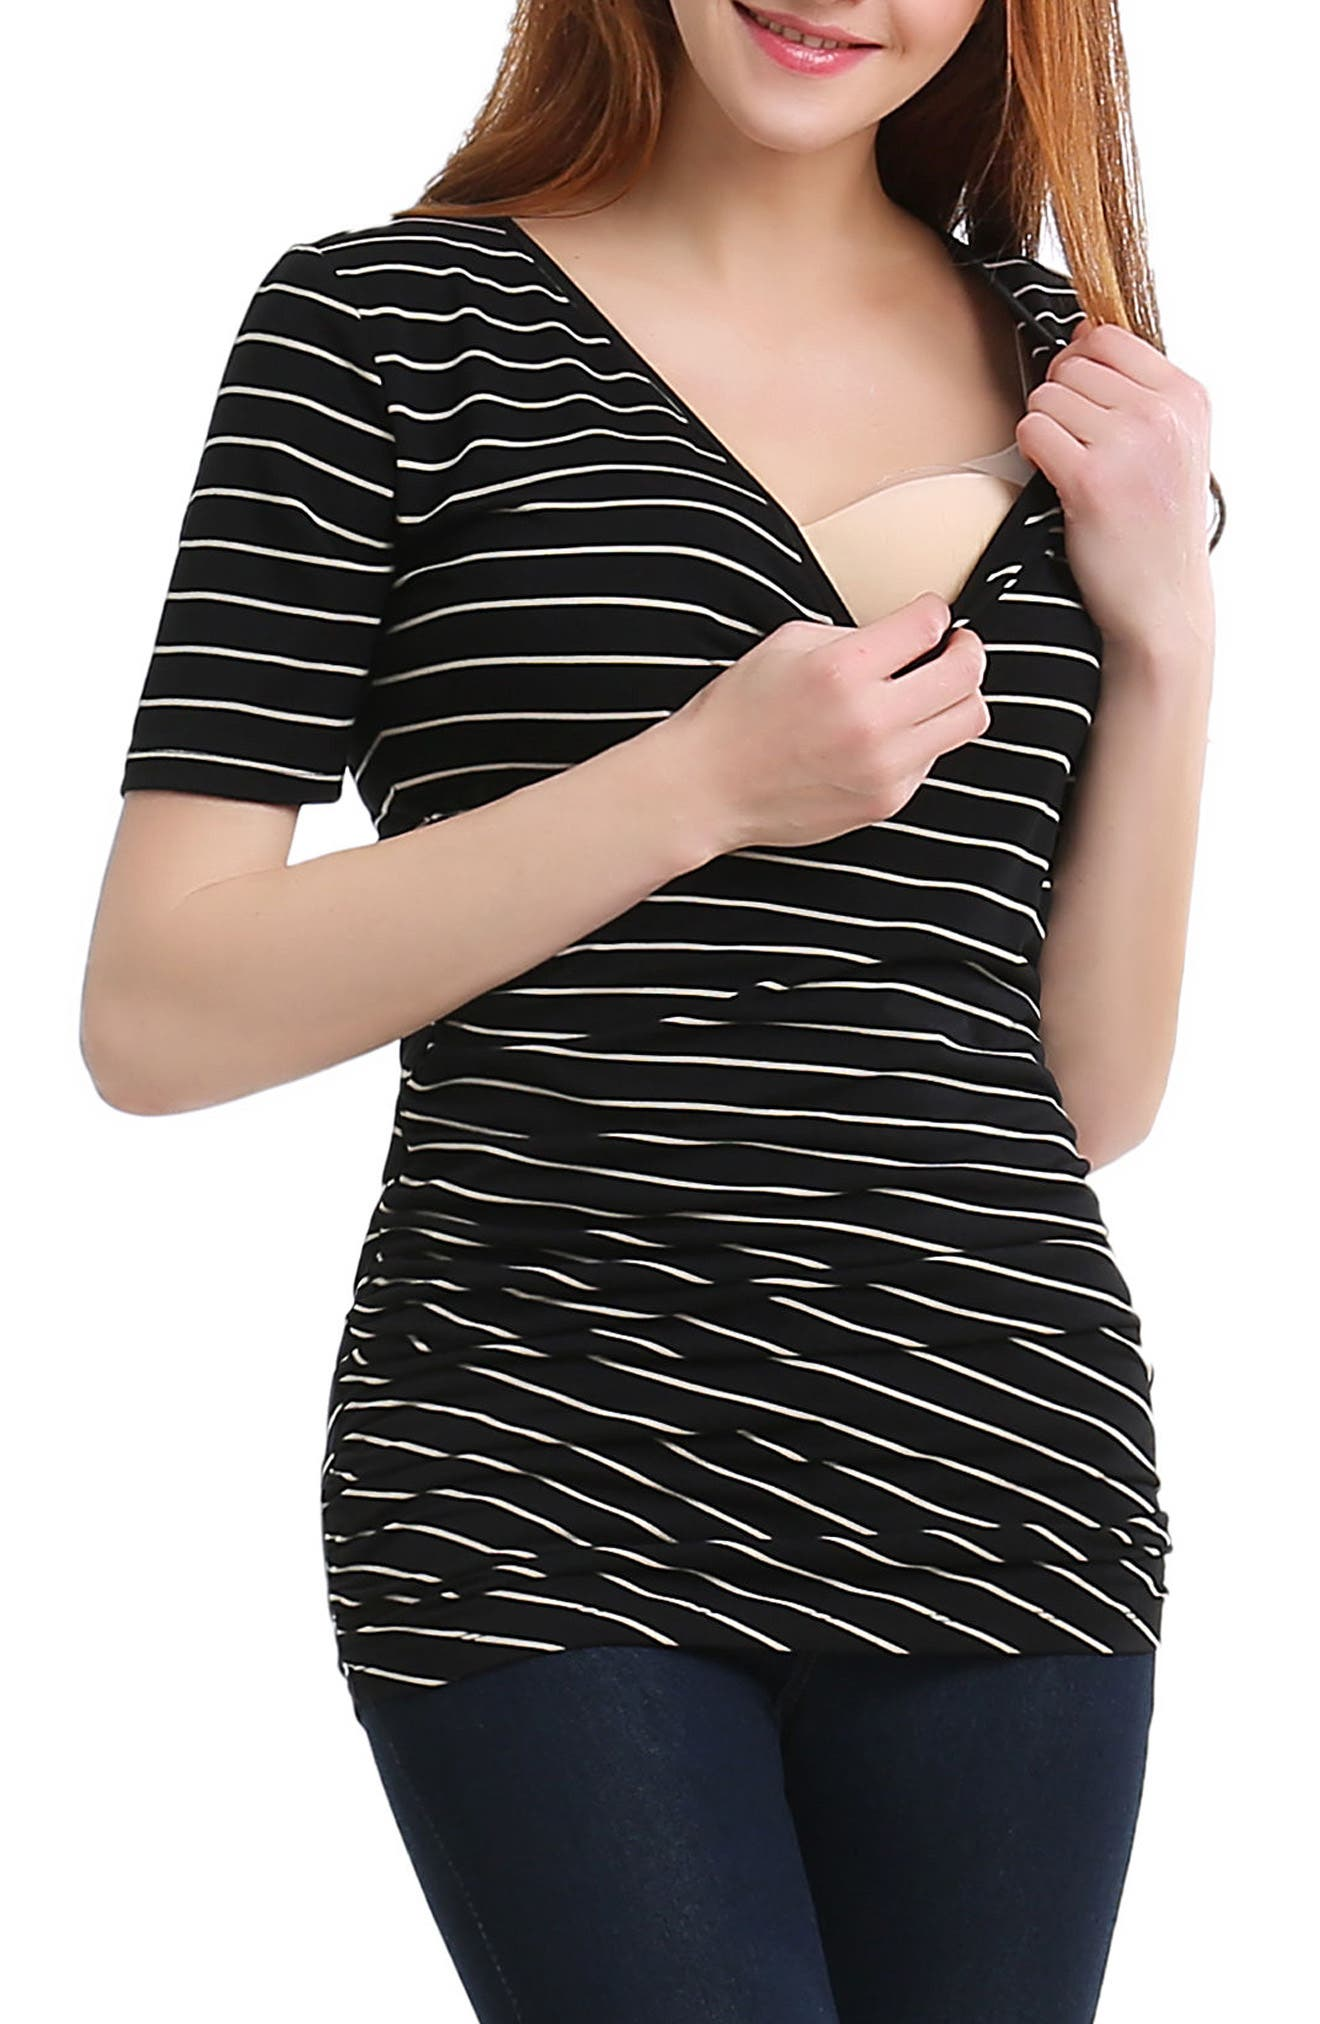 Beverly Ruched Maternity/Nursing Top,                             Alternate thumbnail 4, color,                             BLACK/ BEIGE